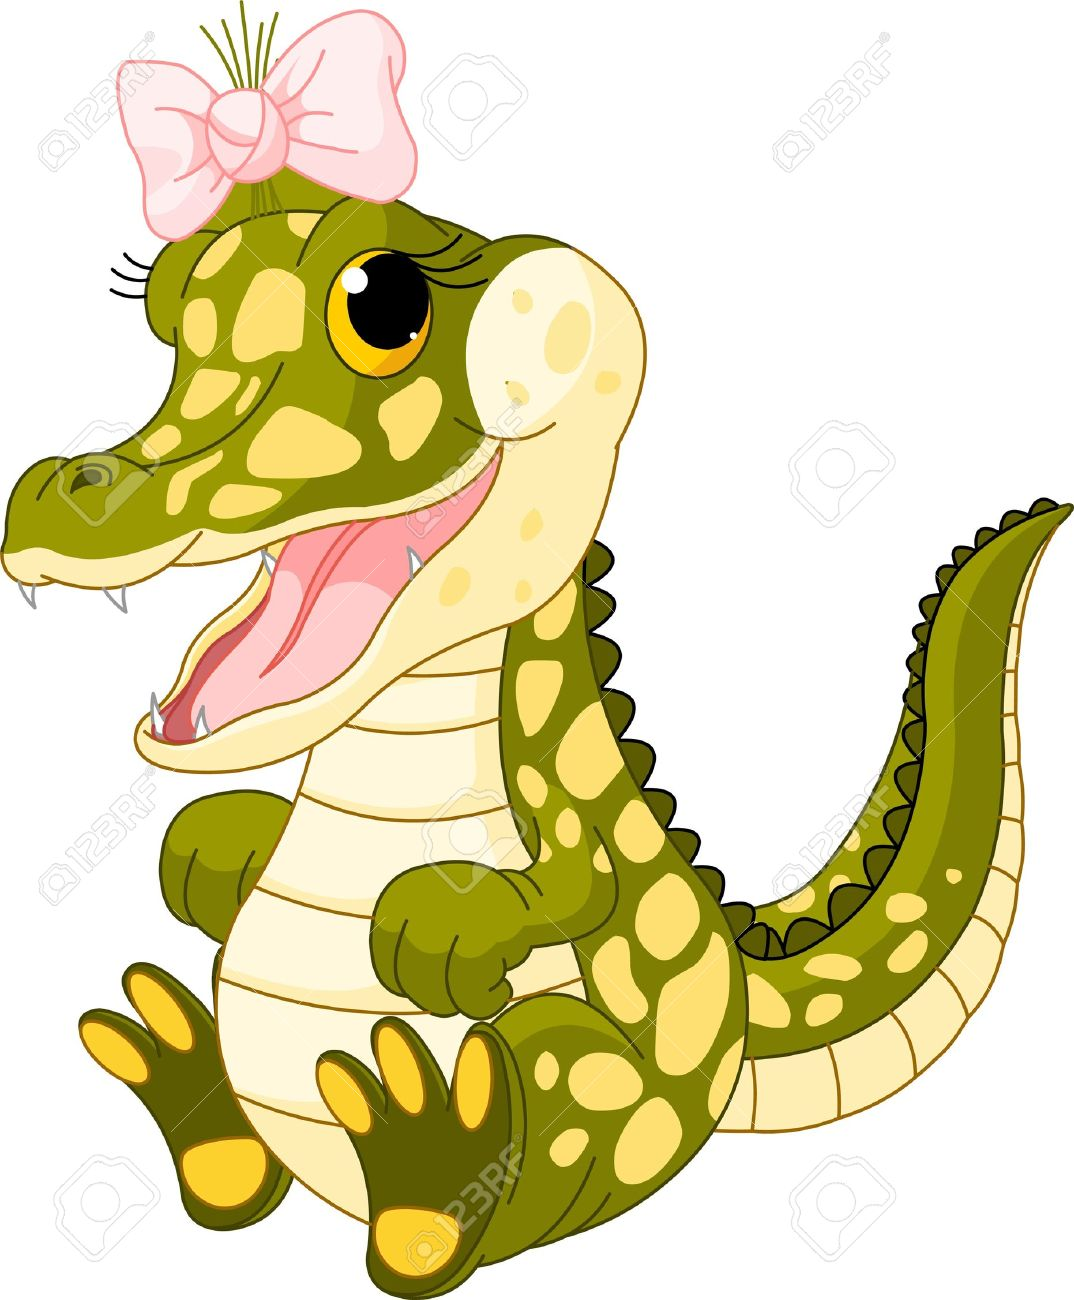 Cute Alligator Pictures